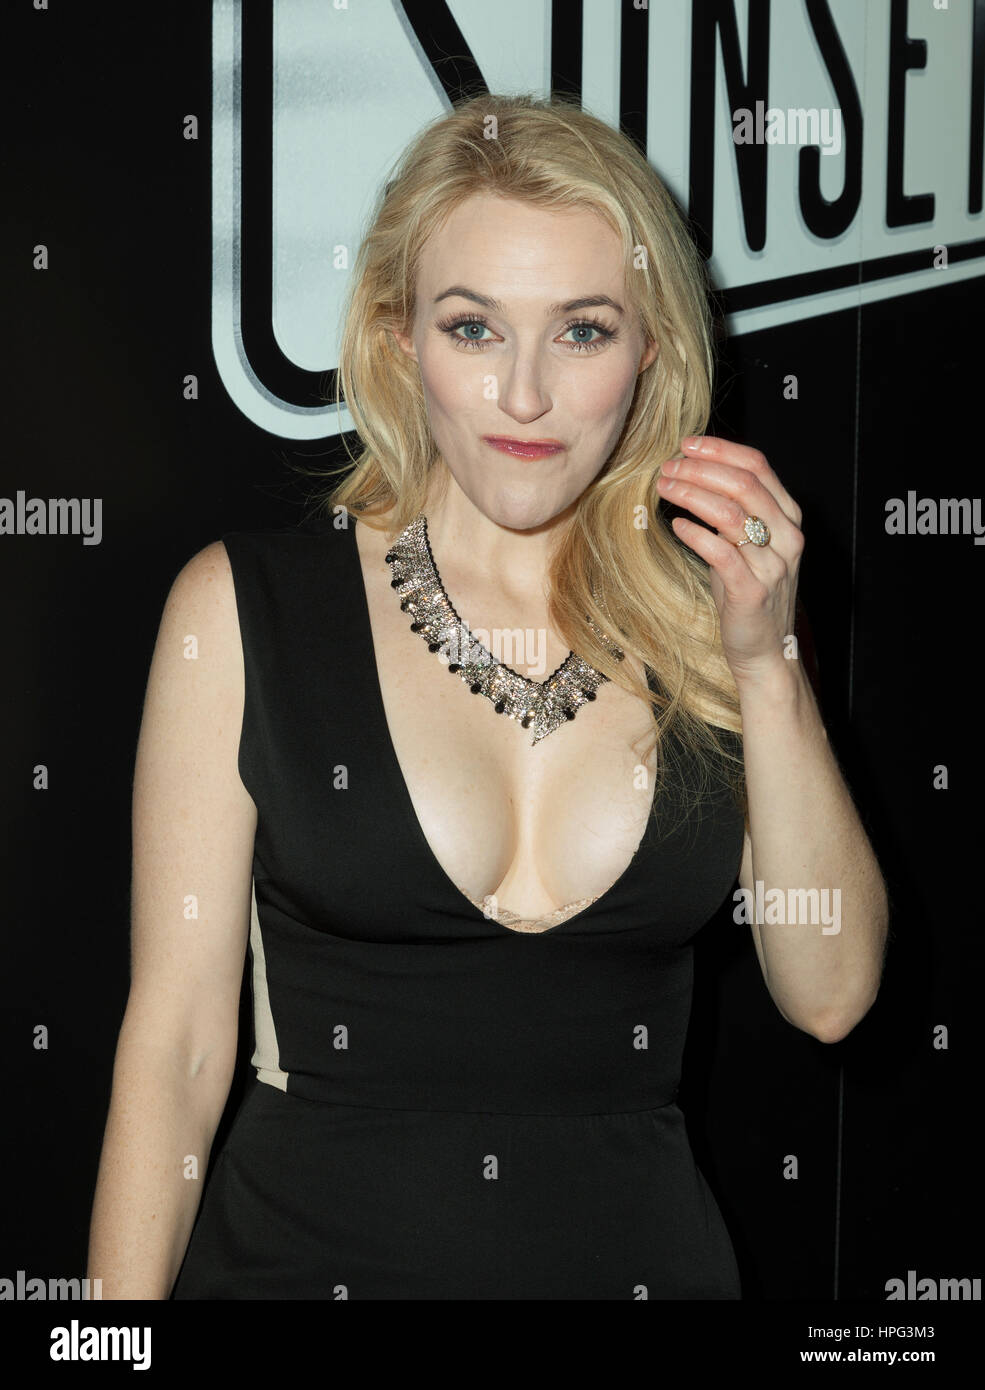 Betsy Wolfe Nude Photos 2